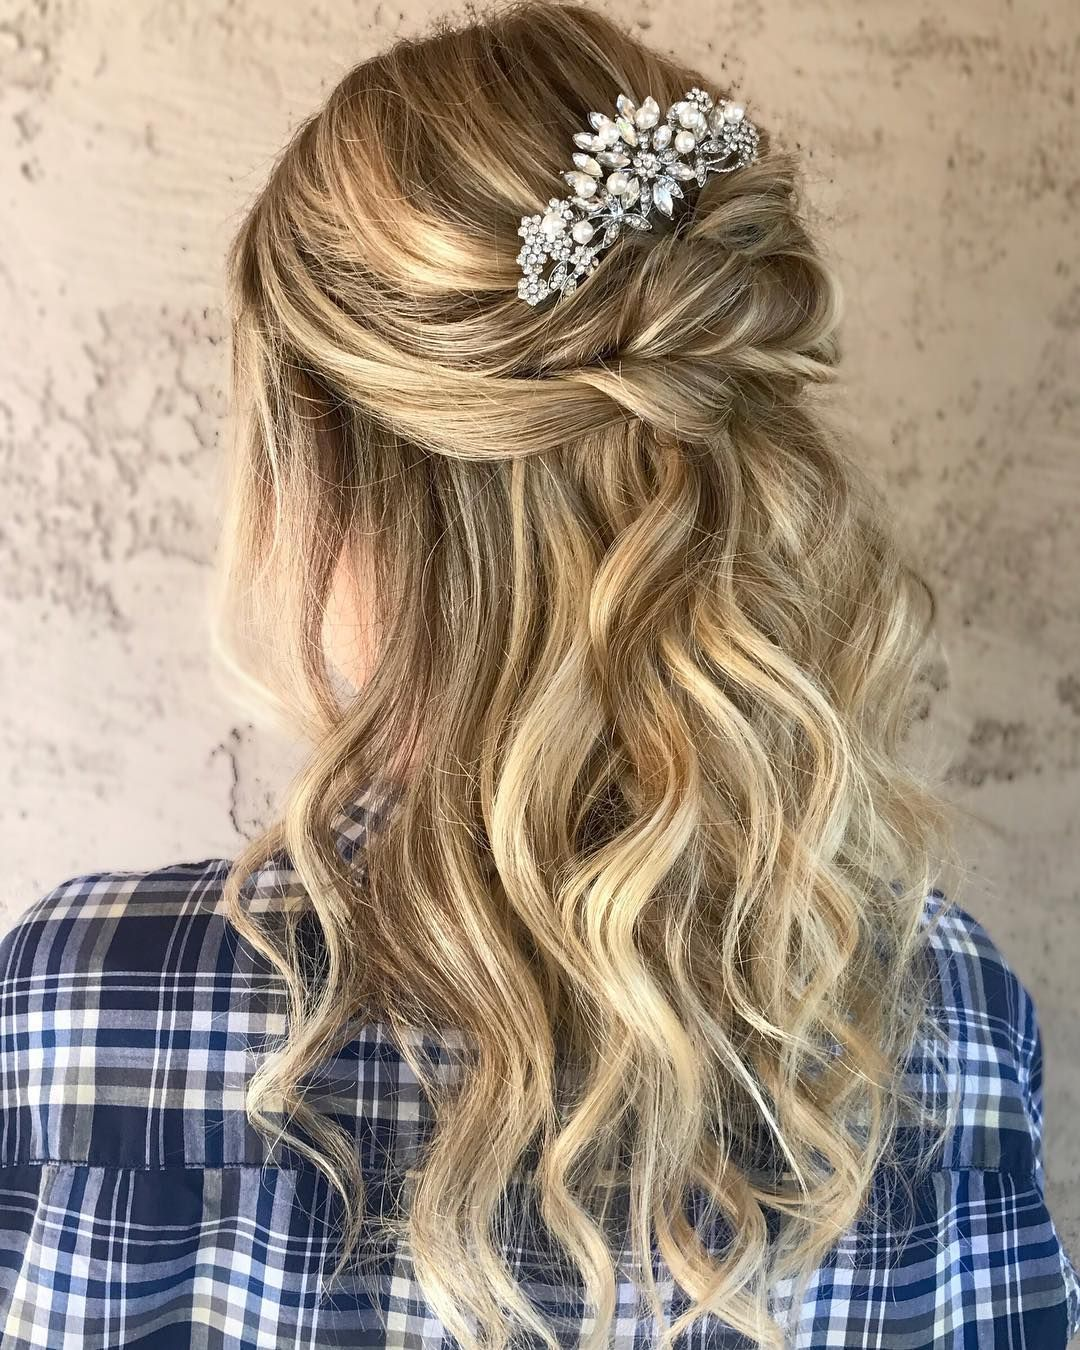 Dropdead gorgeous wedding hairstyles gorgeous half up half down